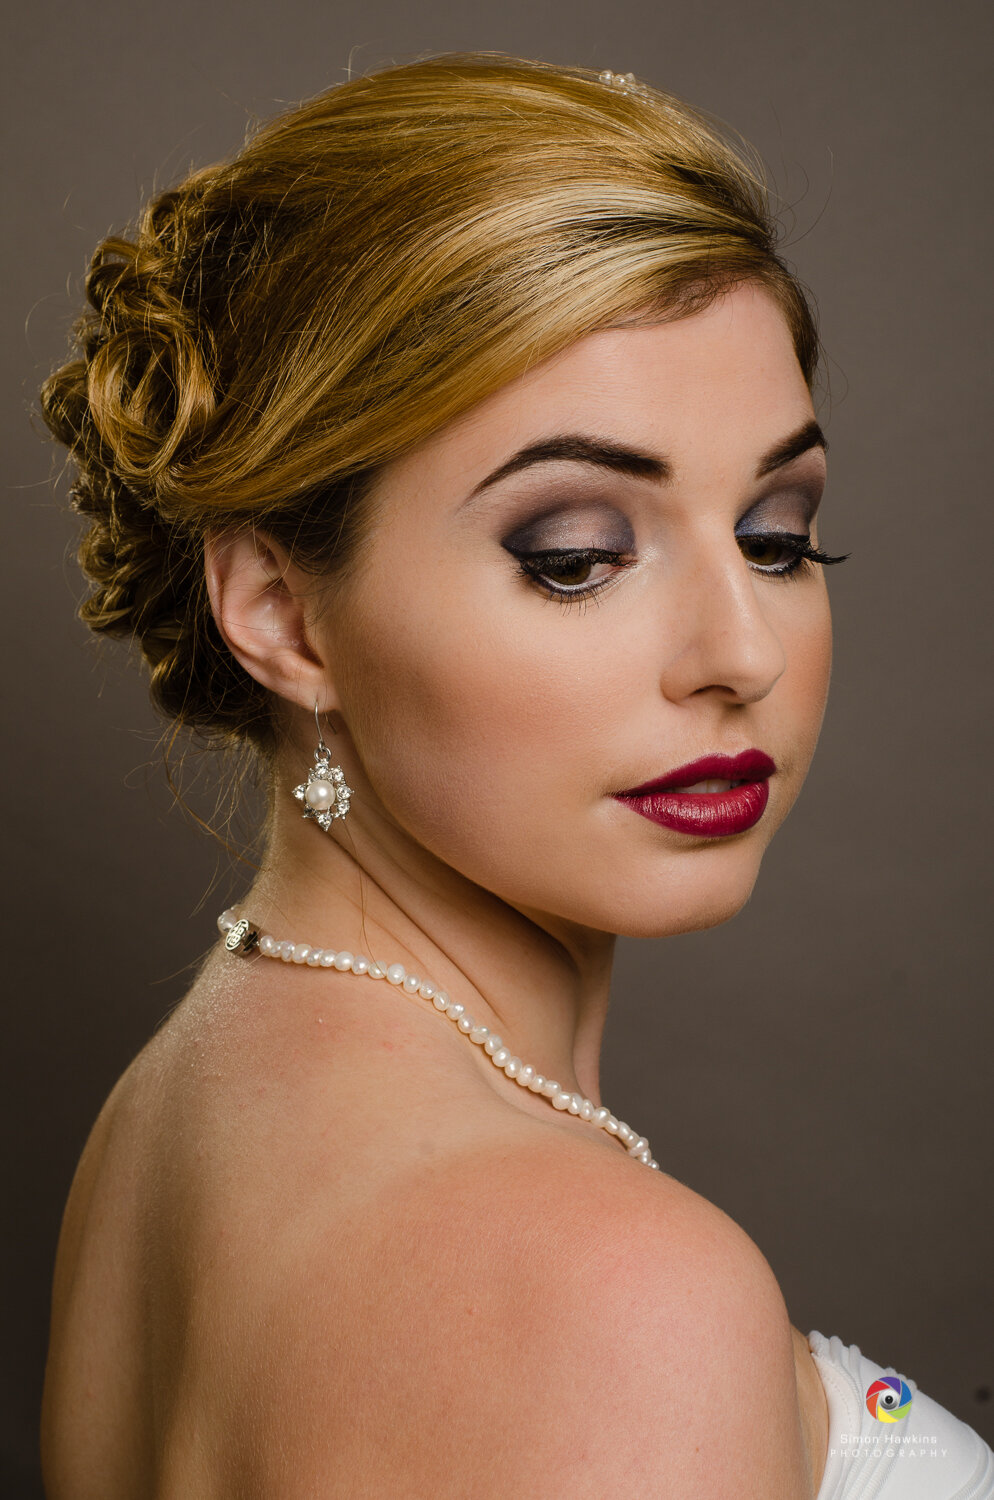 Wedding Makeup - WEDDING PRICELISTLook flawless, elegant and timeless on your wedding day with a professional beautiful bespoke make-up application!